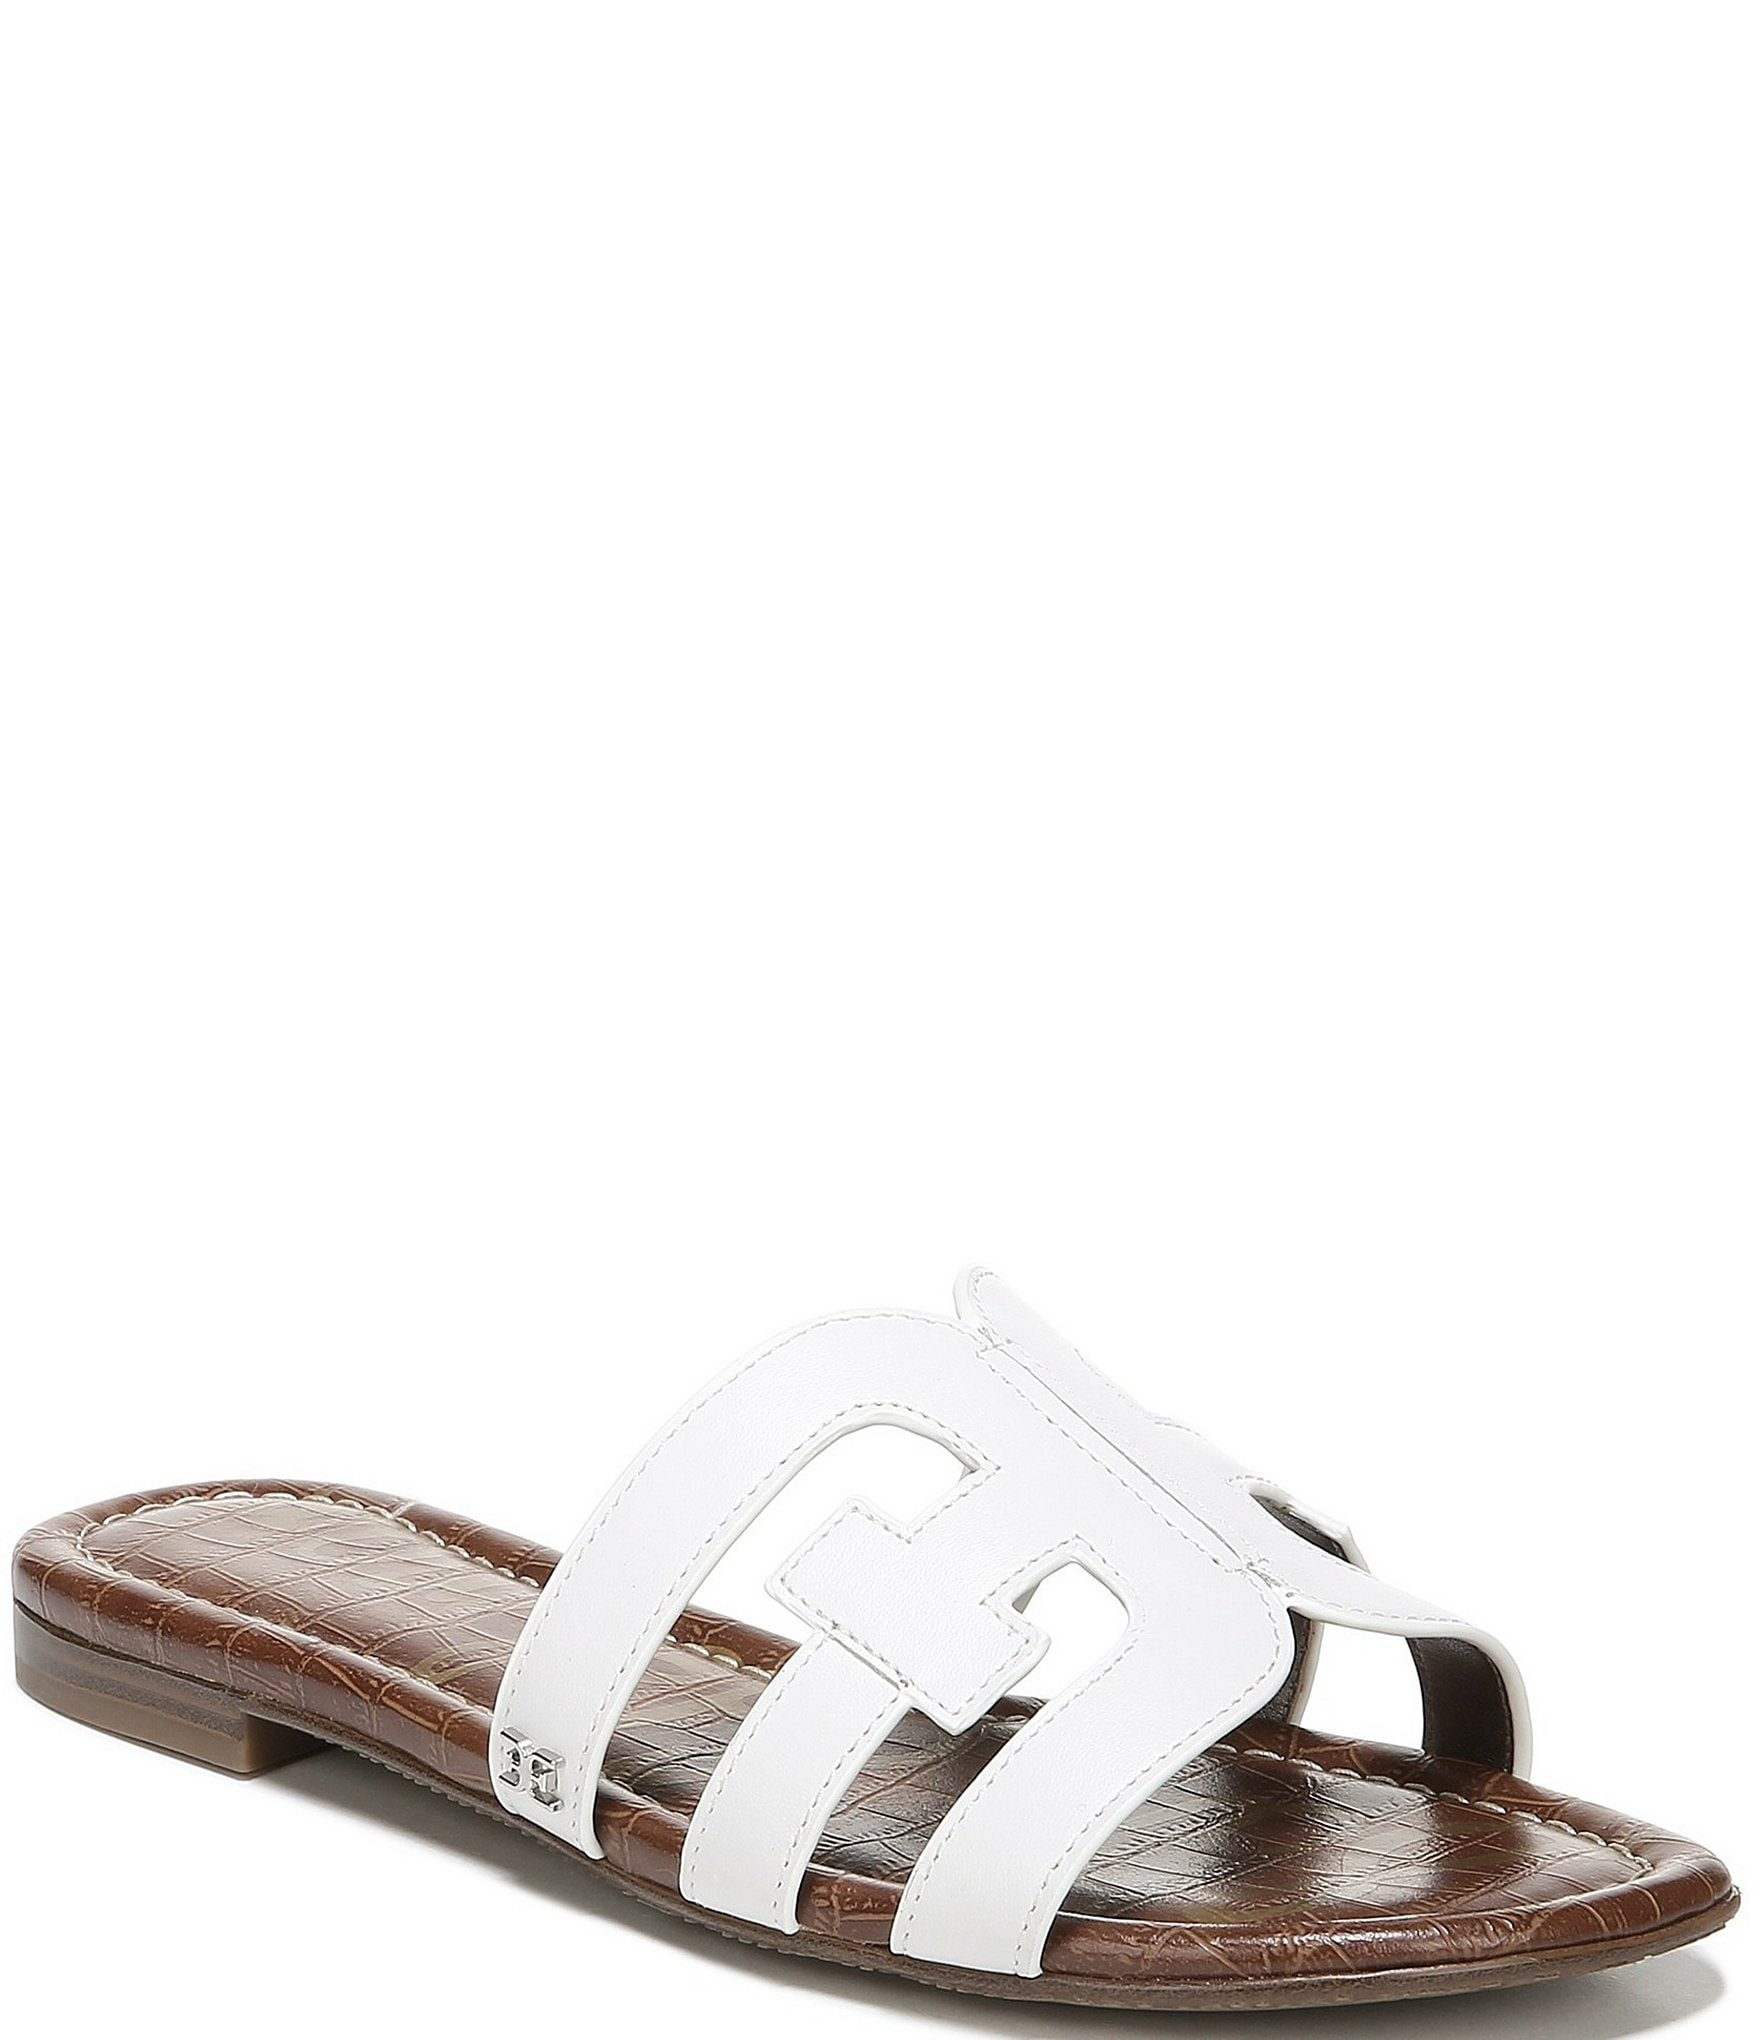 4e067264ded8 Sam Edelman Bay Double E Sandals